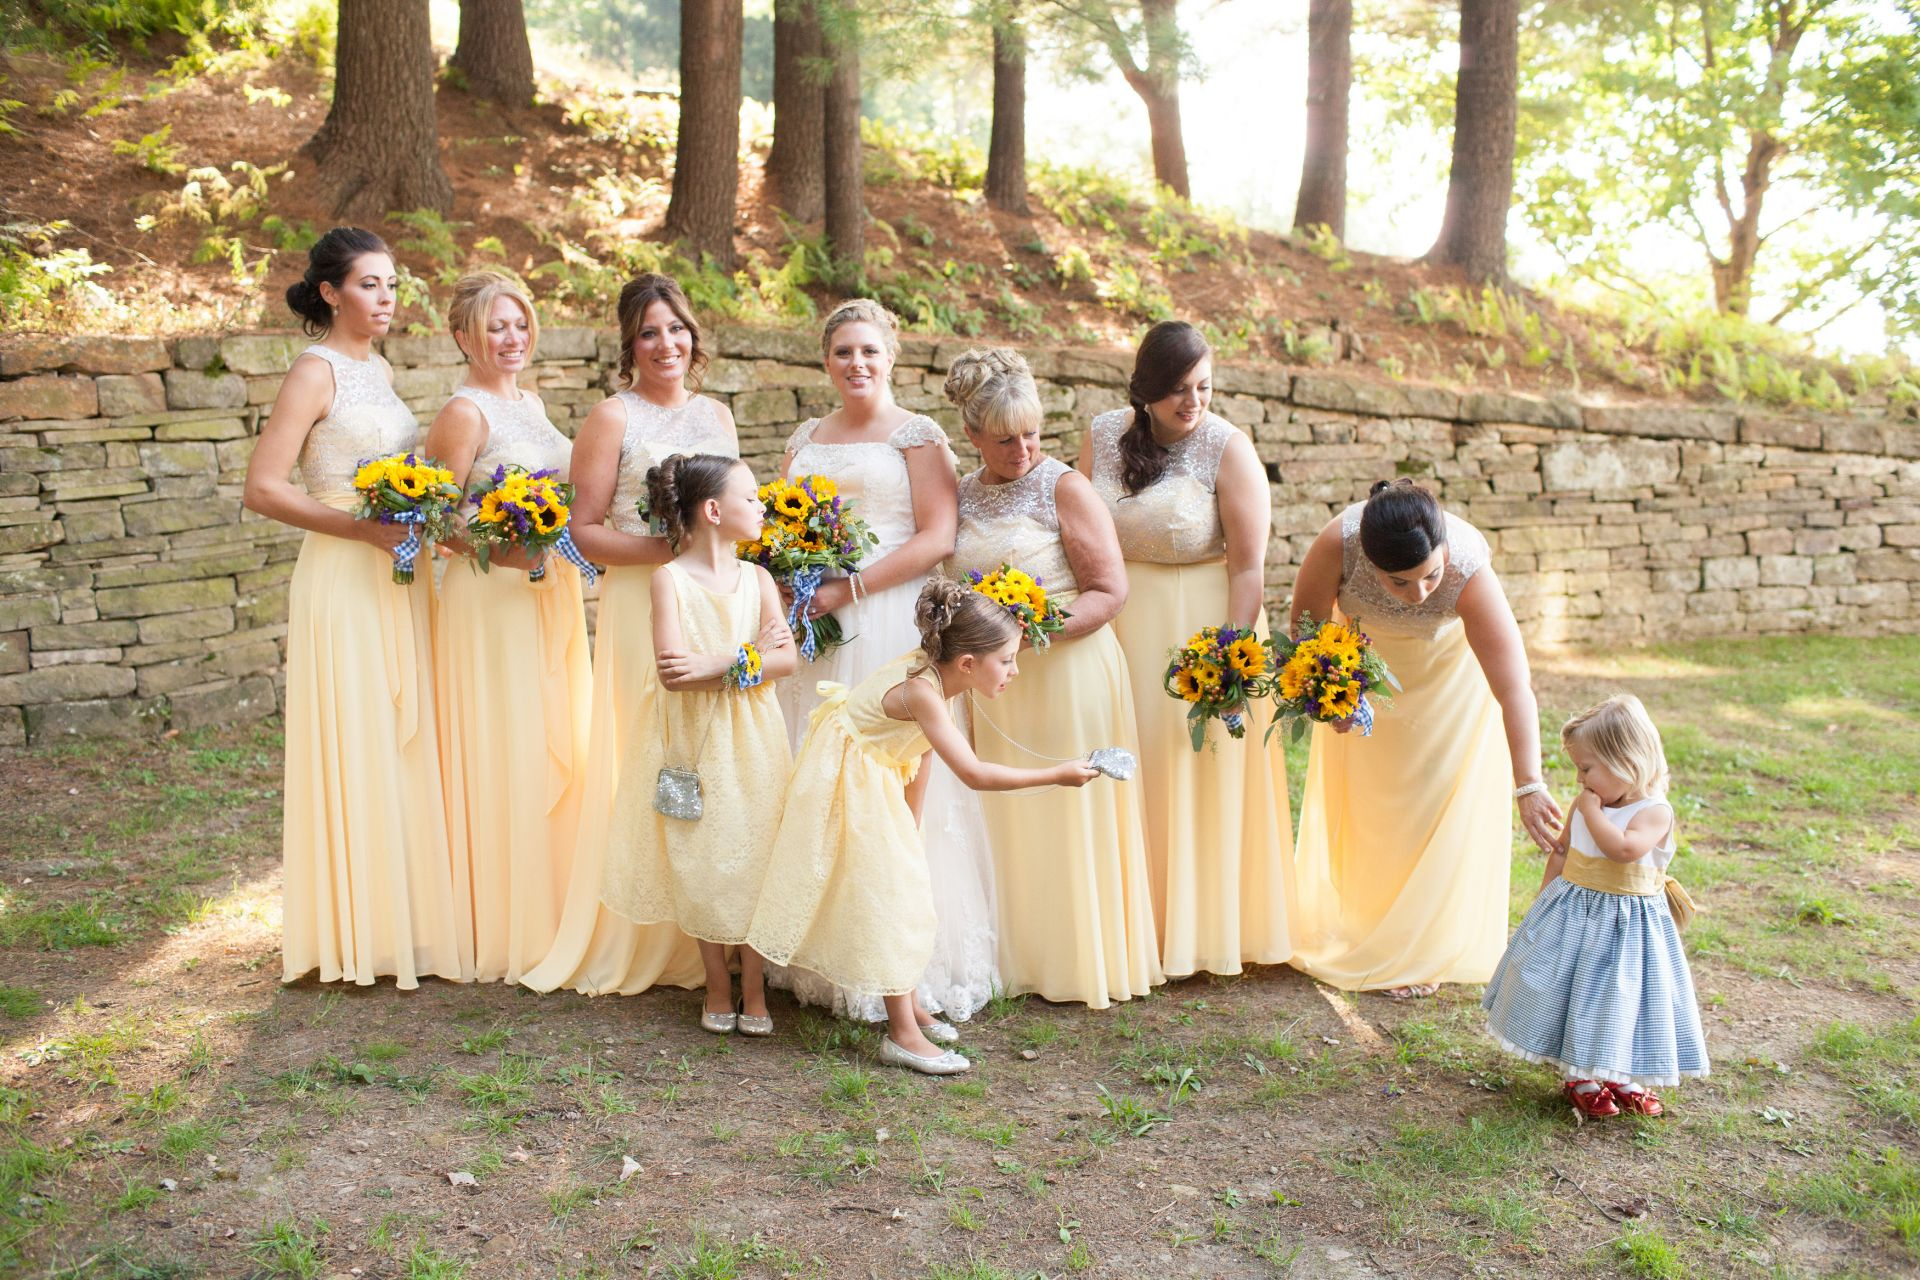 Flower Girl Dress Sewing Course